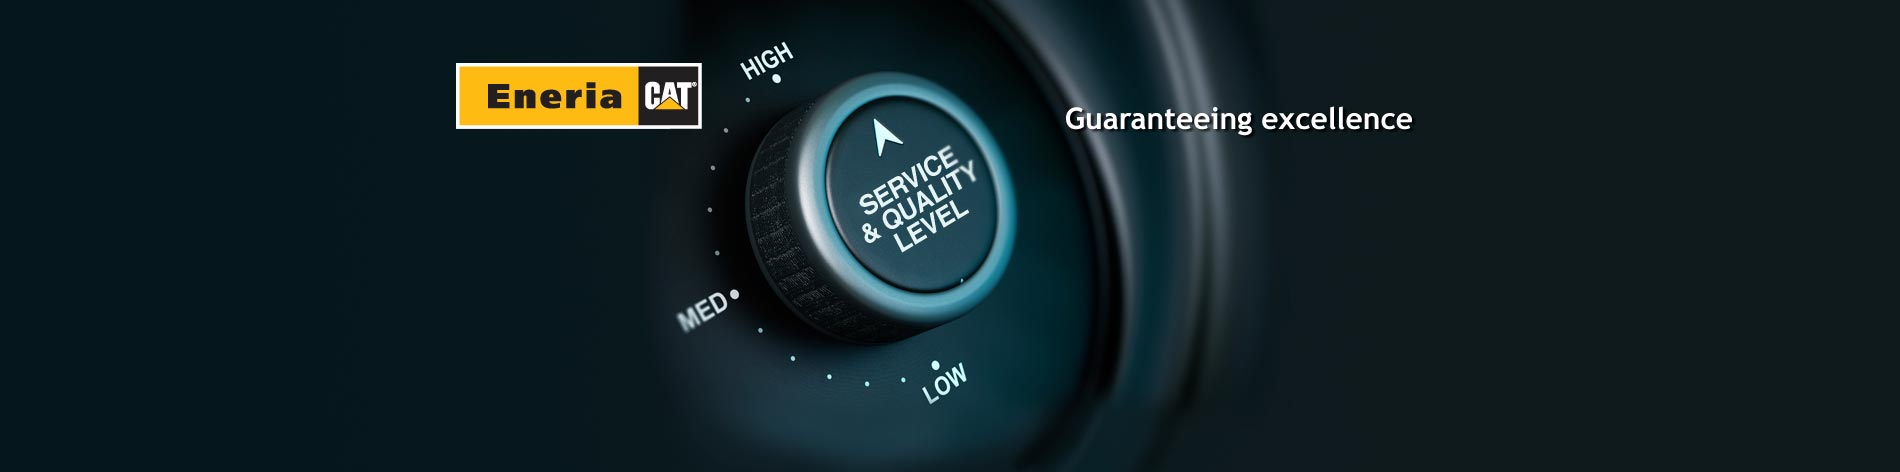 We offer you a complete range of maintenance service and support for our engines and generator sets.